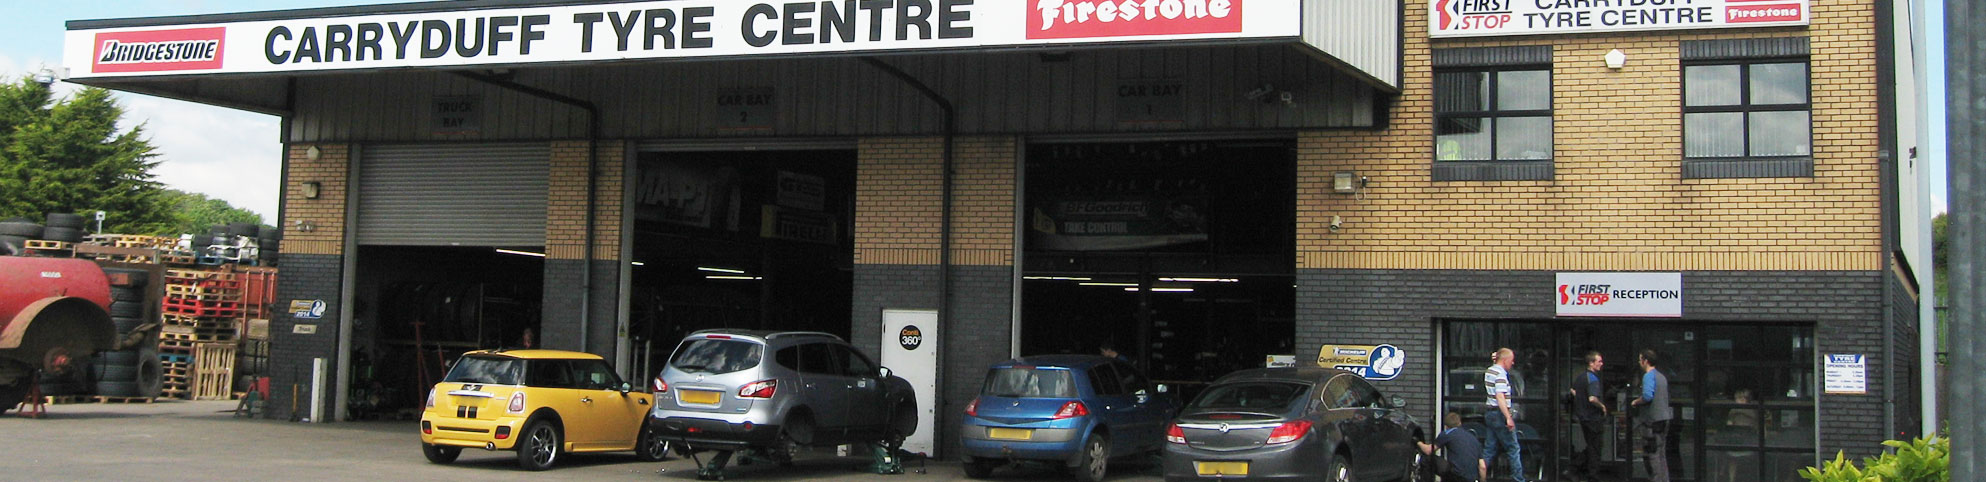 Carryduff Tyre Centre in Carryduff